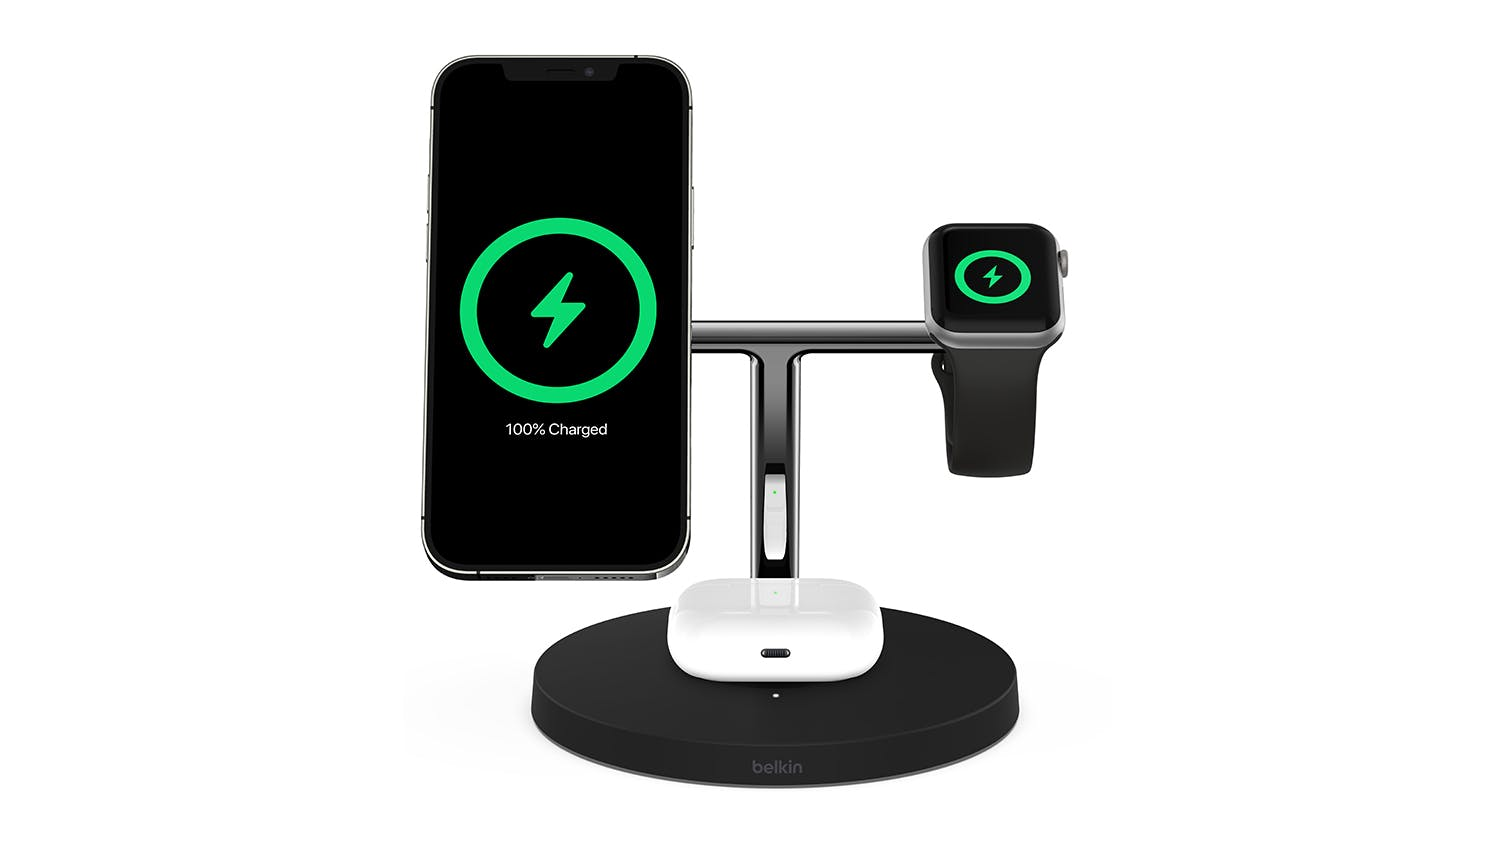 Belkin Boost Up Charge Pro 3-in-1 Wireless Charger Stand with MagSafe 15W - Black